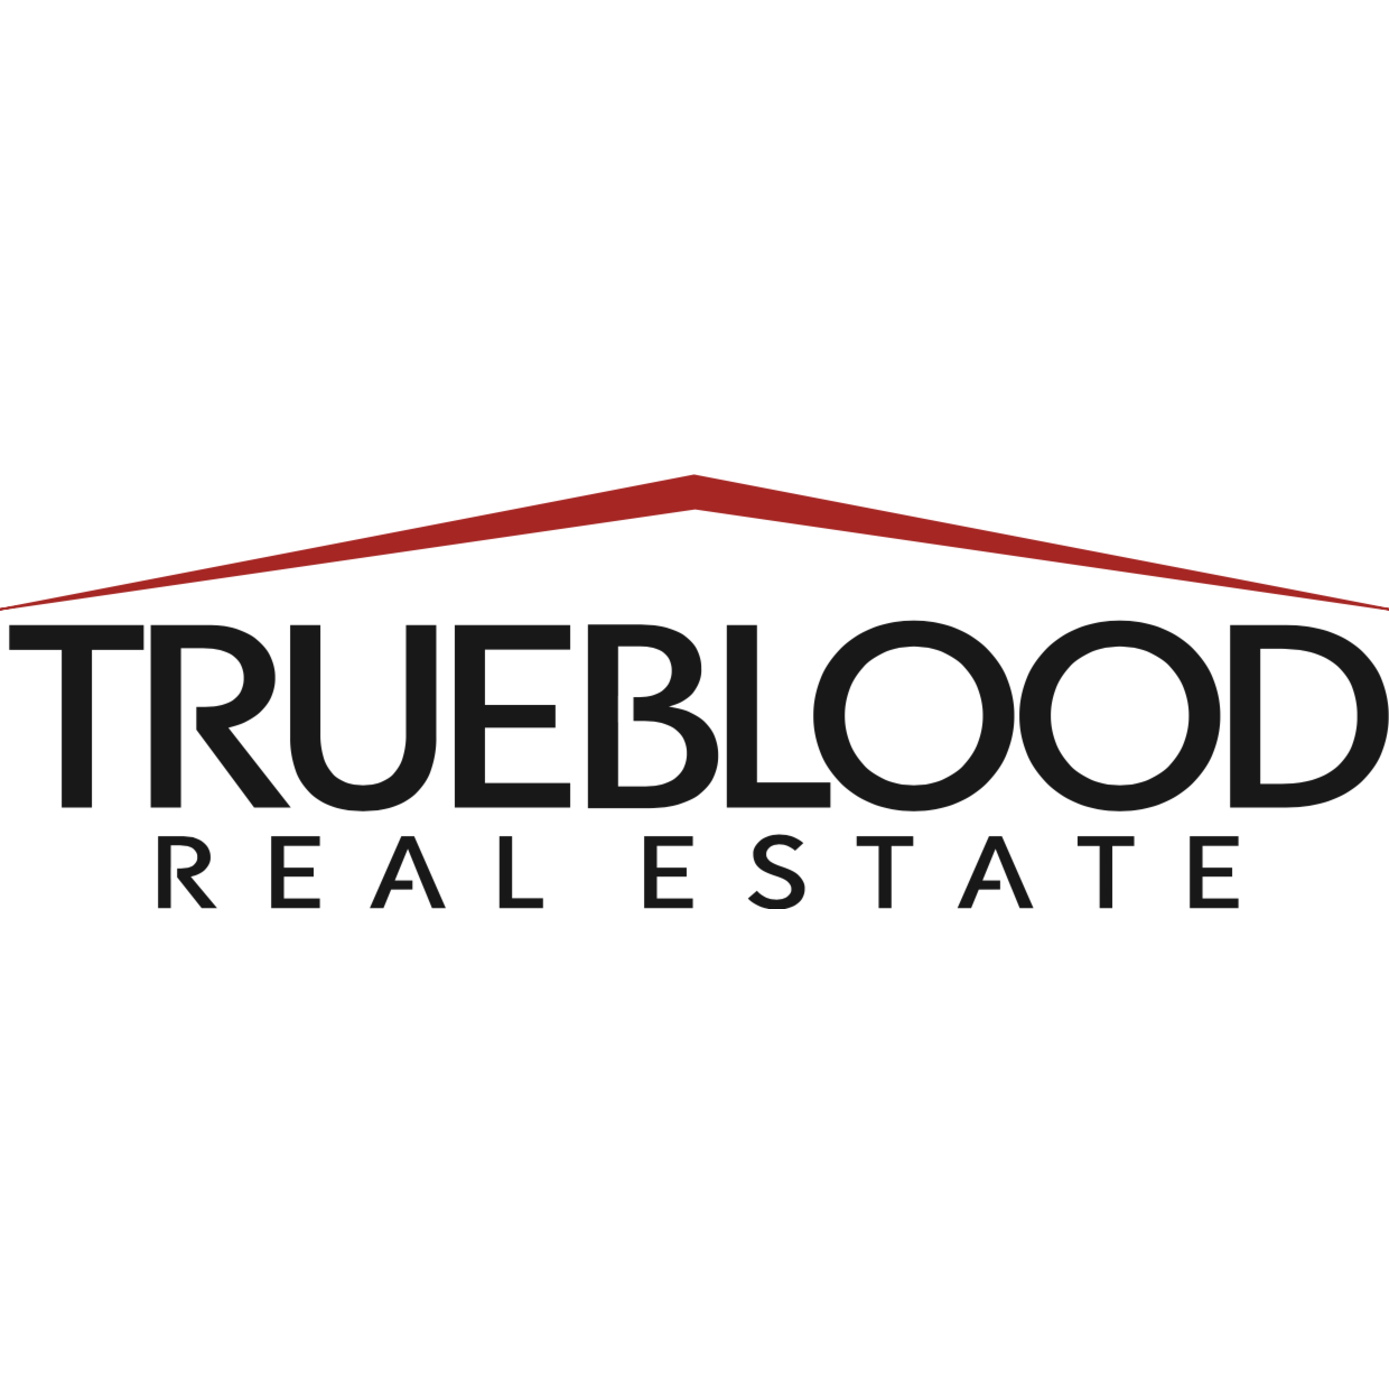 Trueblood Real Estate